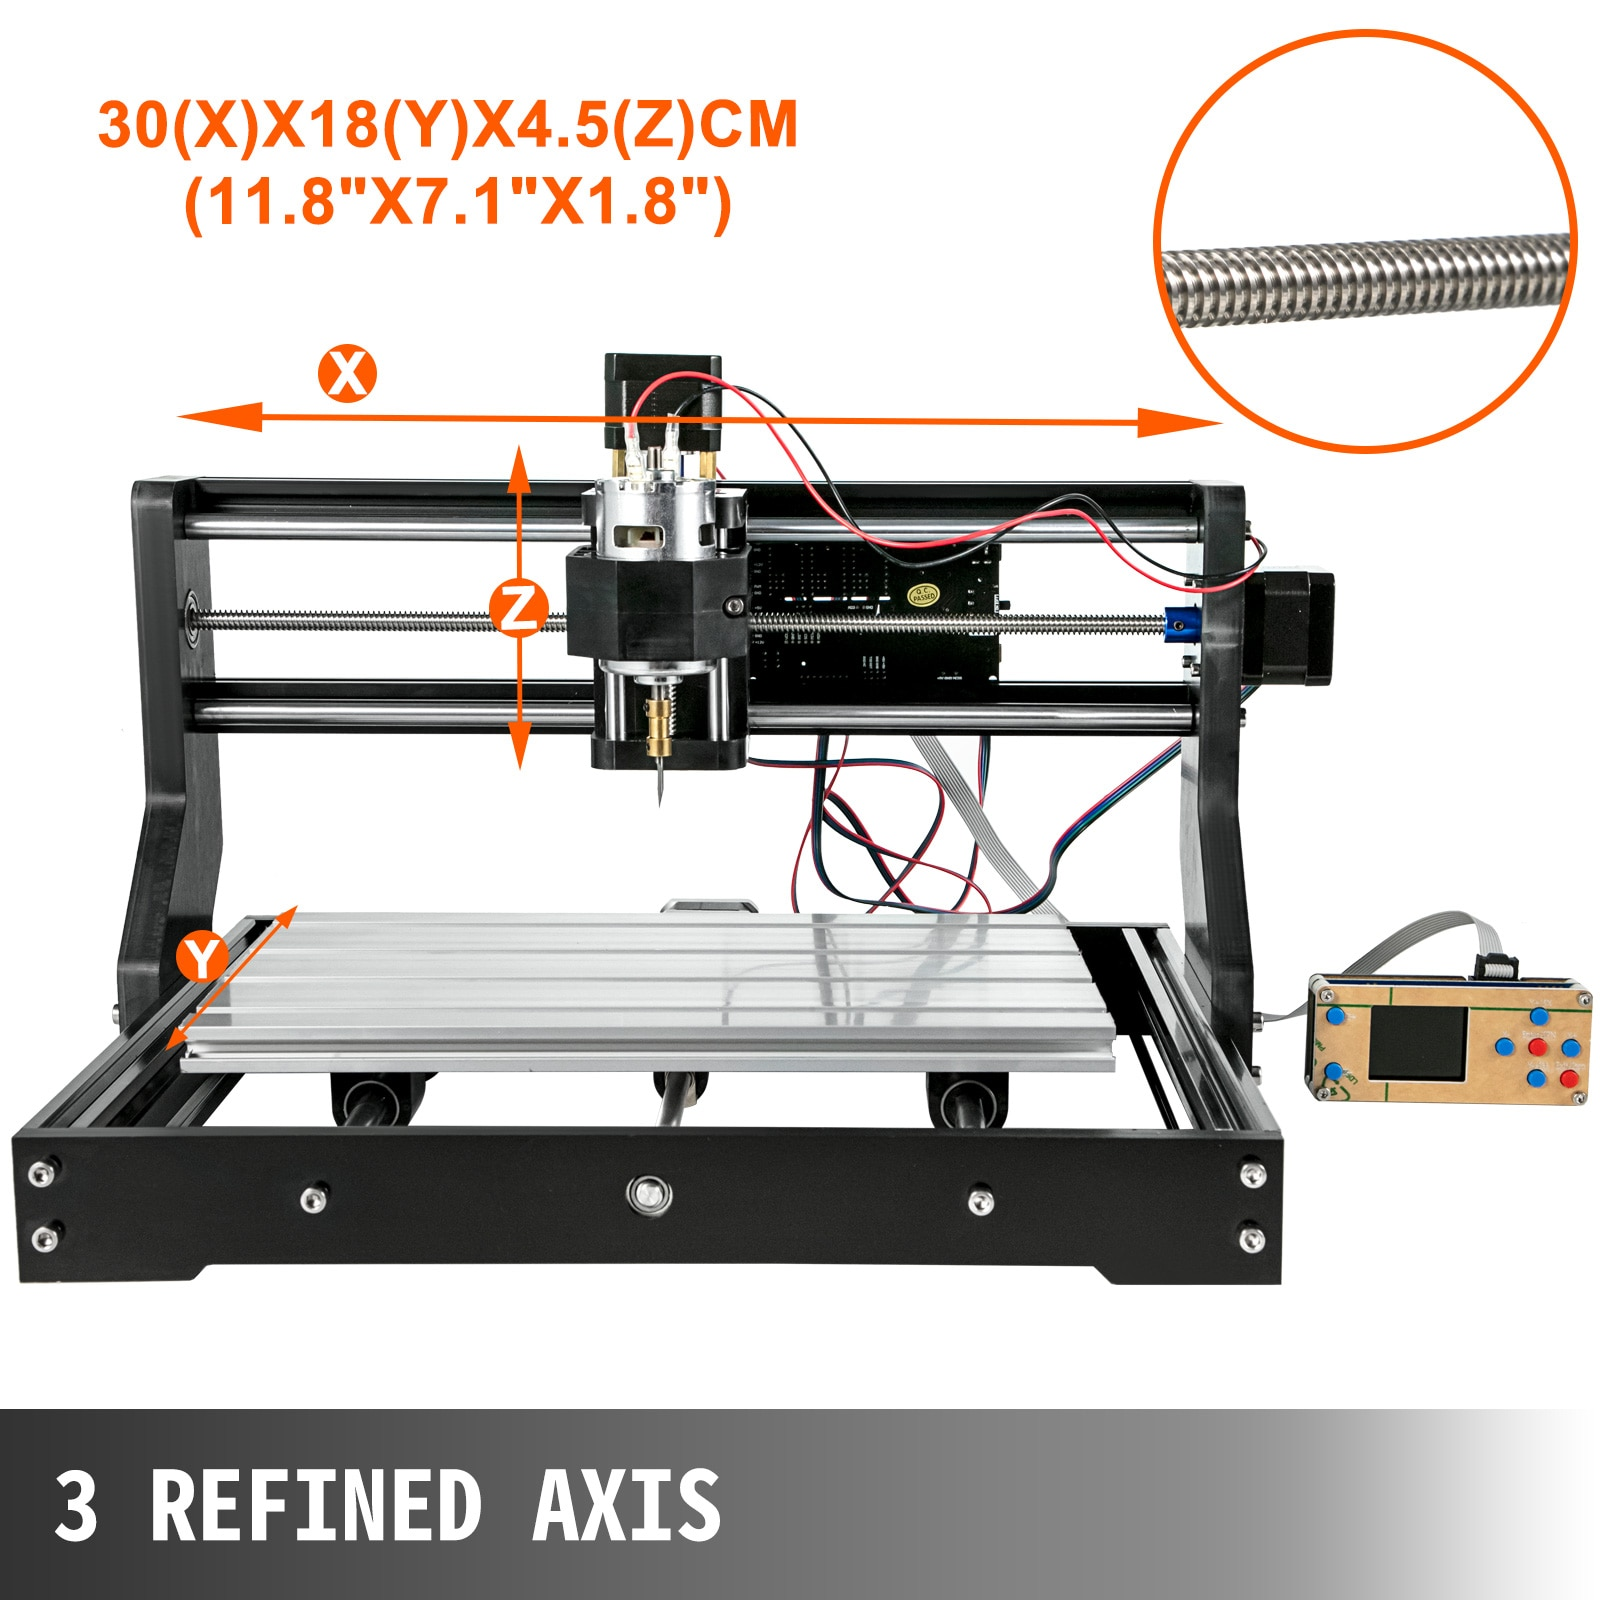 VEVOR CNC 3018 PRO Laser Engraver 3 Axis Wood Router Engraving Machine GRBL with Laser Head ER11 Milling Machine for DIY PCB PVC enlarge